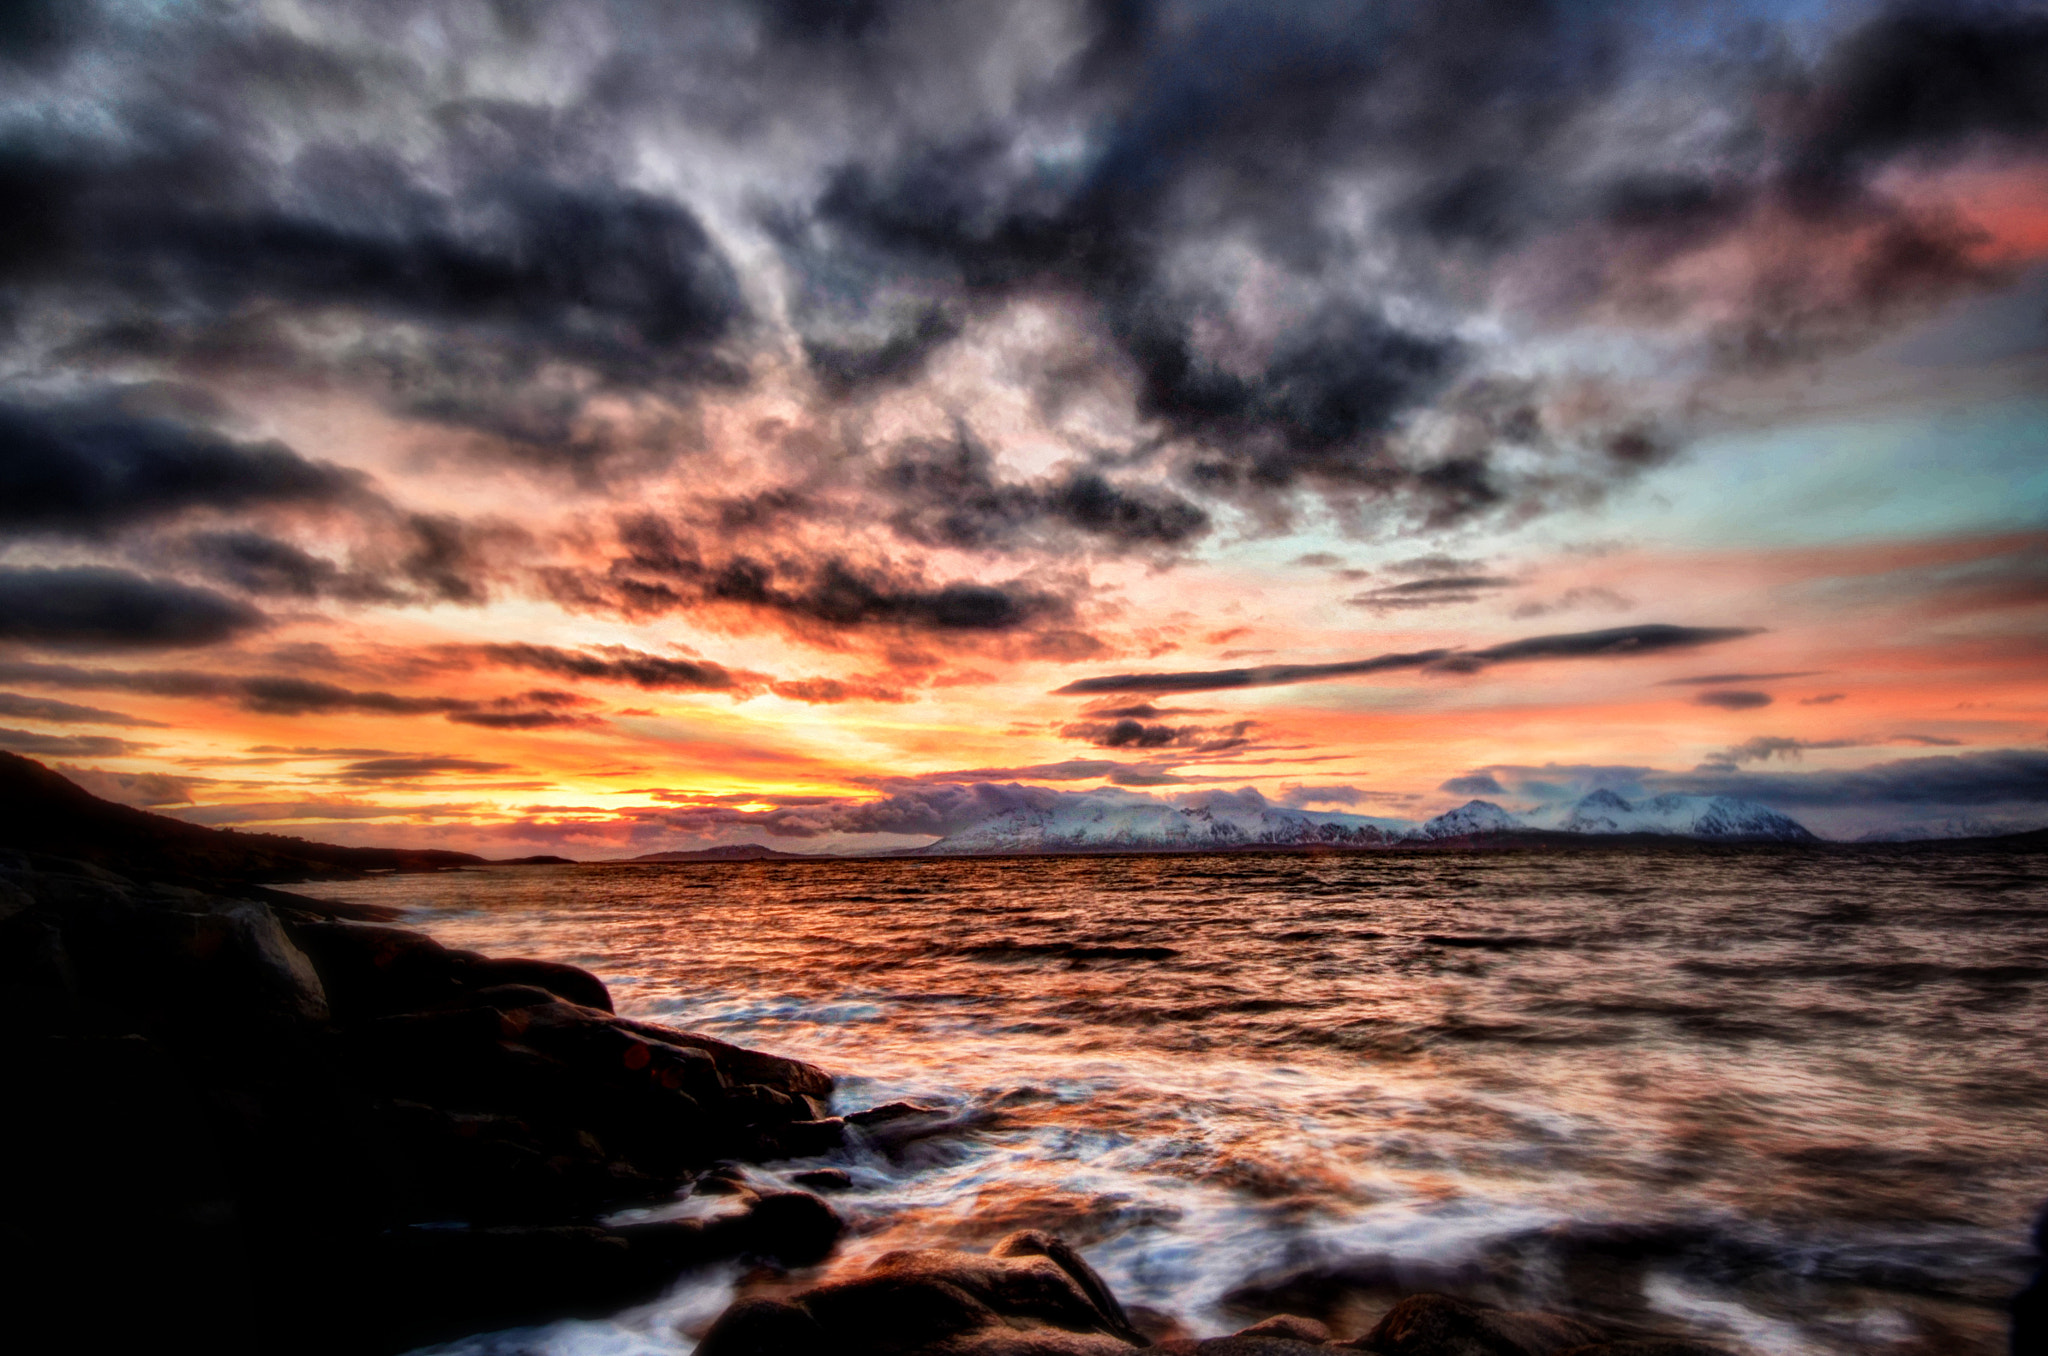 Photograph Last rays of the sun by Trond Eriksen on 500px